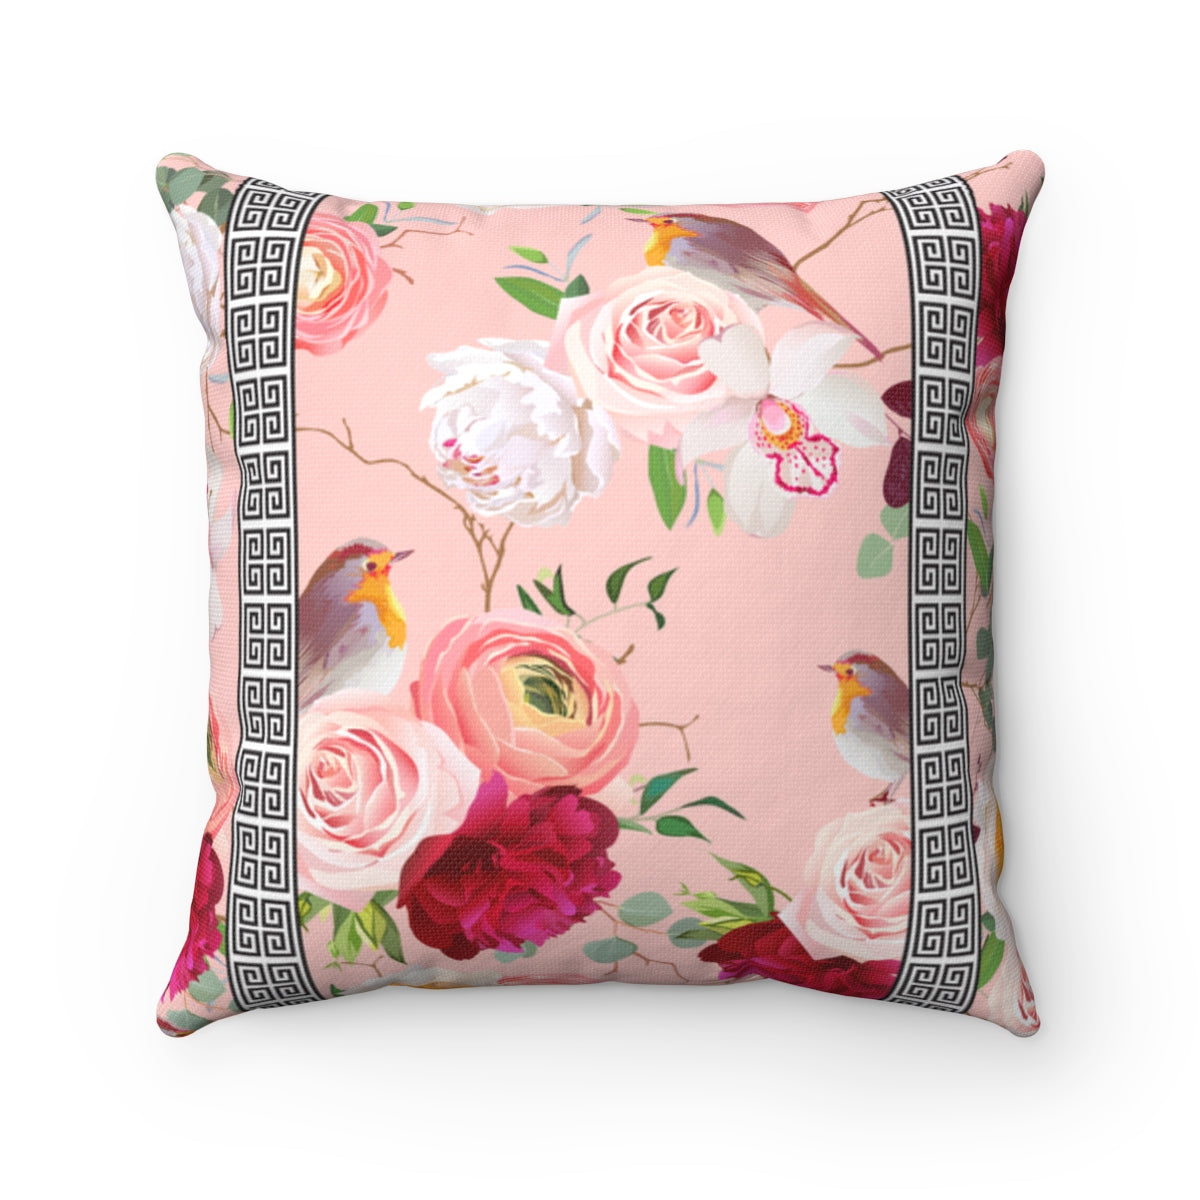 Greek Key Florals & Birds on Blush Pink Background: Throw Pillow Cover